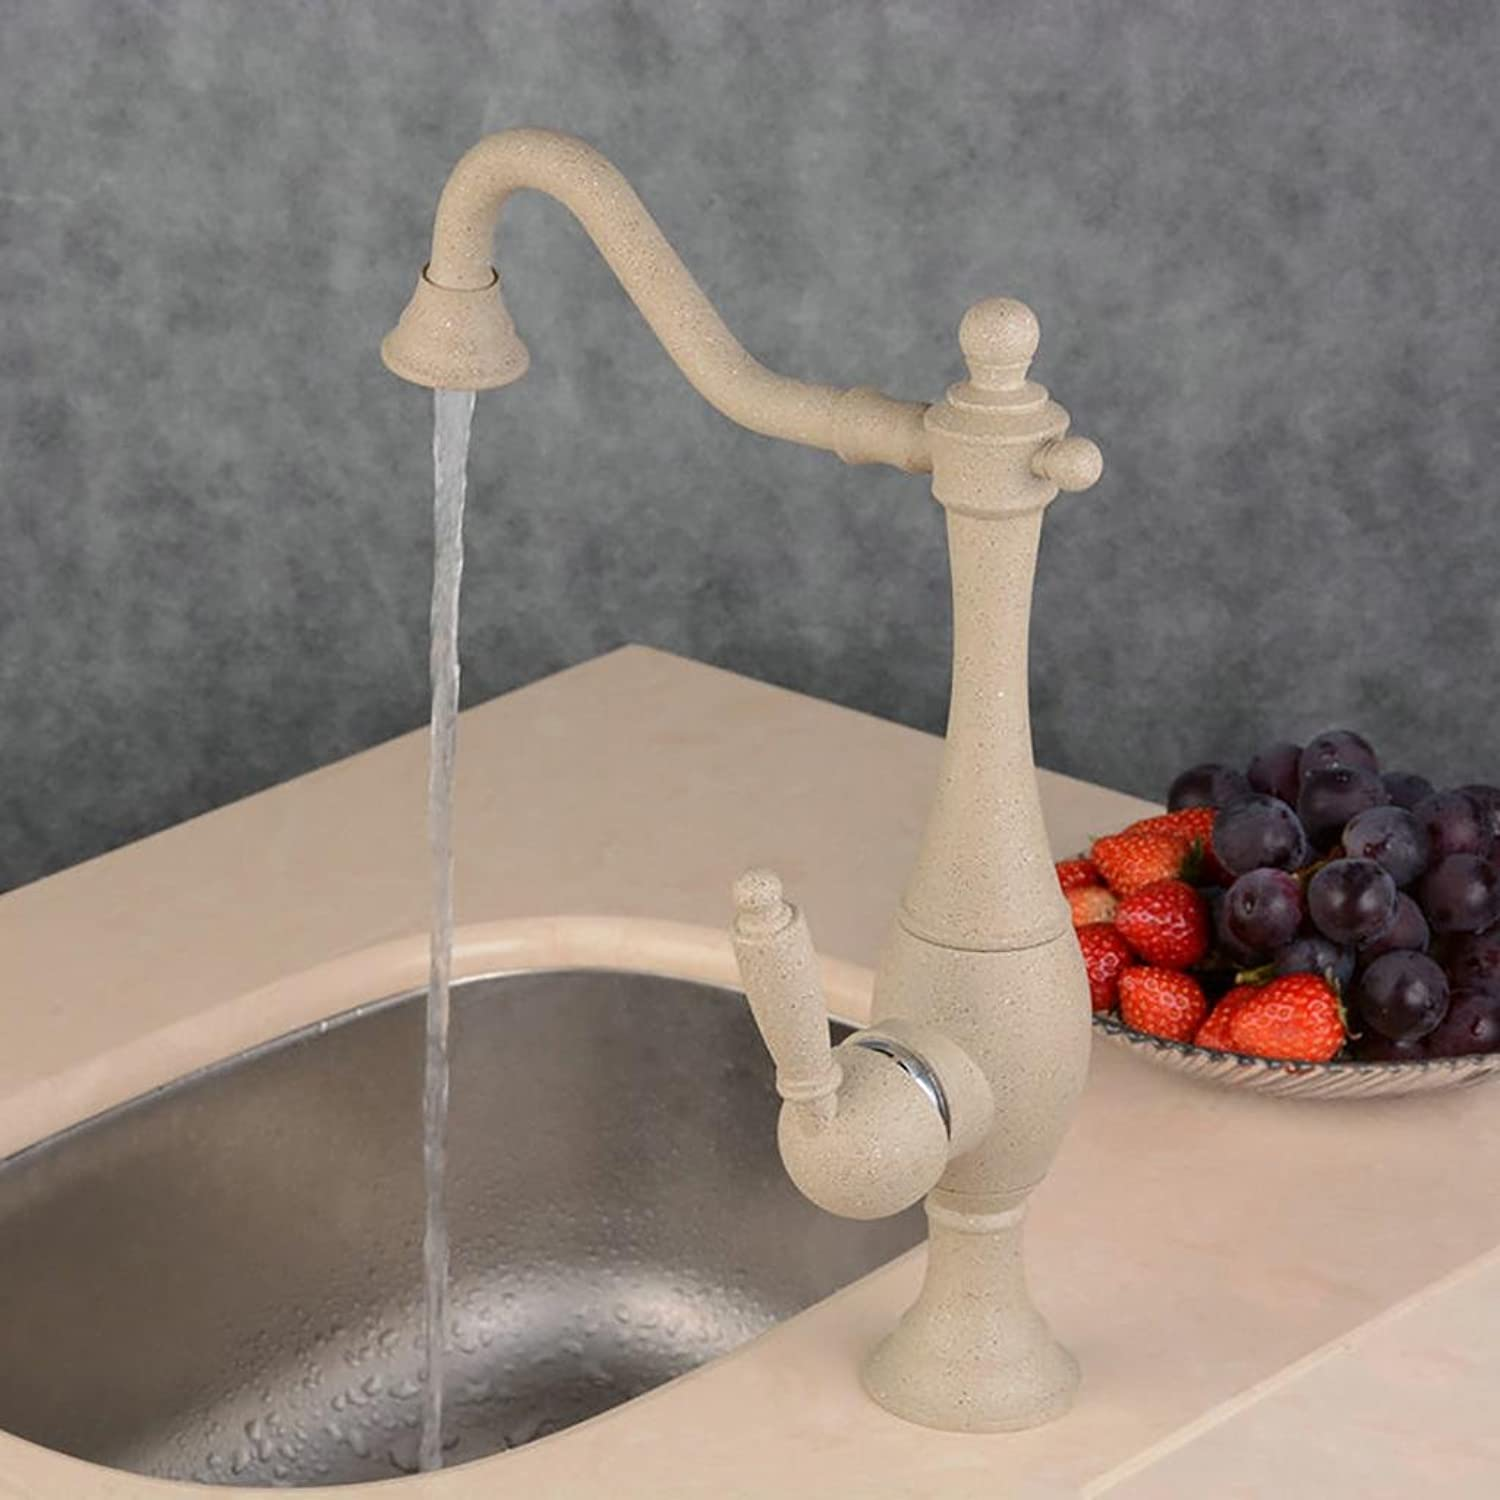 PLYY Traditional Kitchen Mixer tap Single Lever redary Waterfall Bathroom Sink Faucet with Hot and Cold